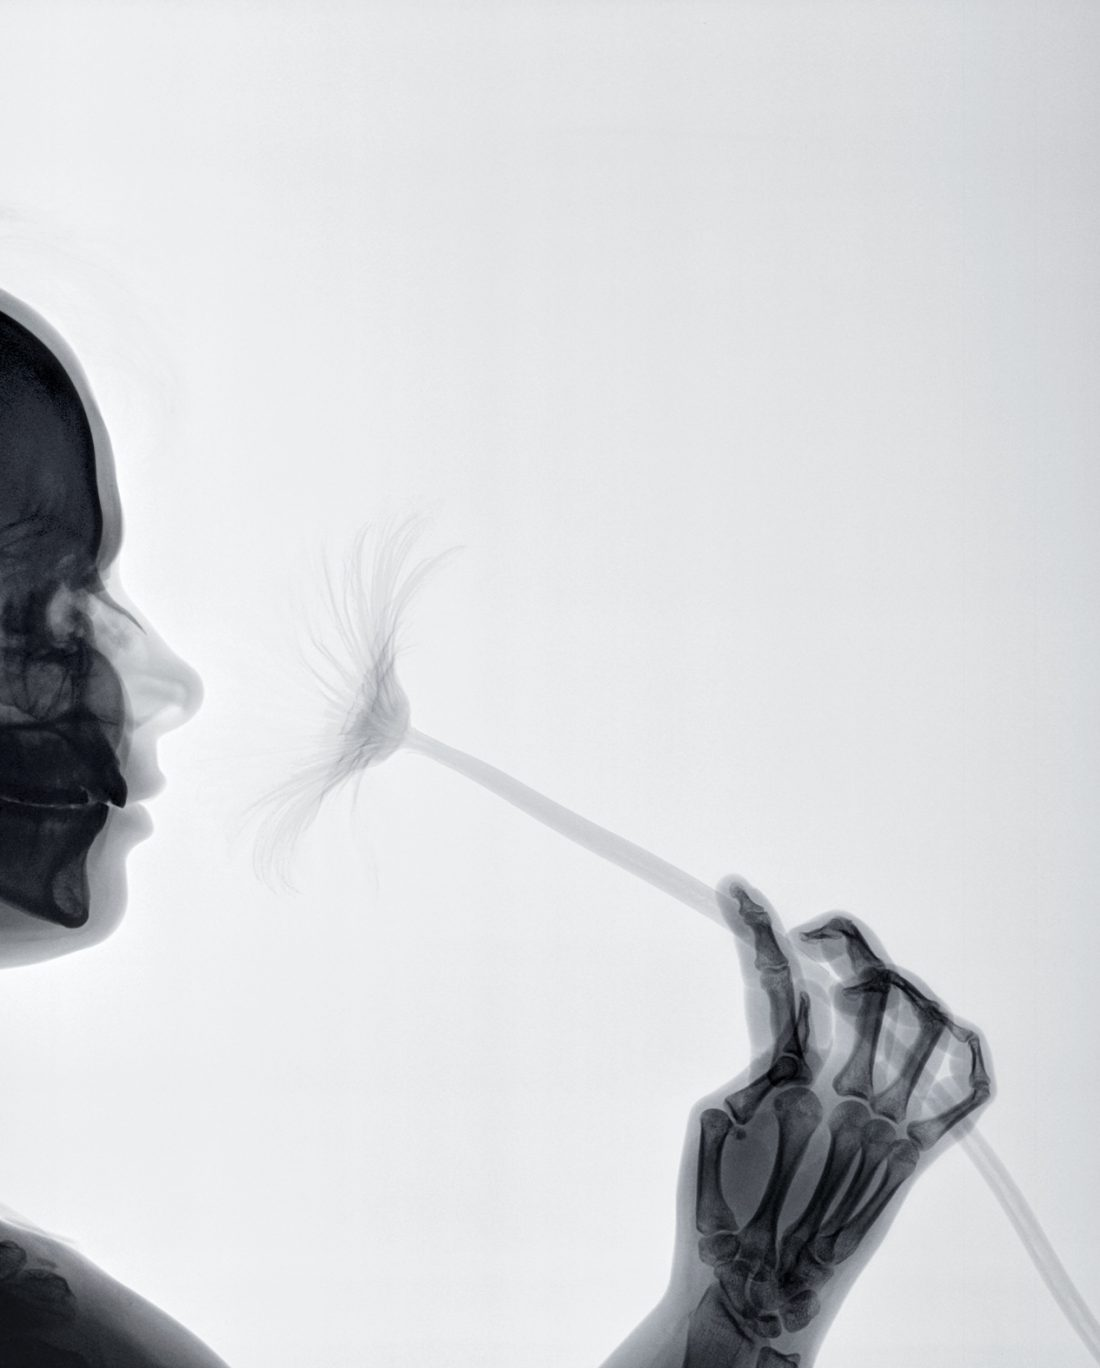 Grotesque & Arabesque (Profile with Gerbera II), x-ray, light box, 42,5 x 52,5 cm